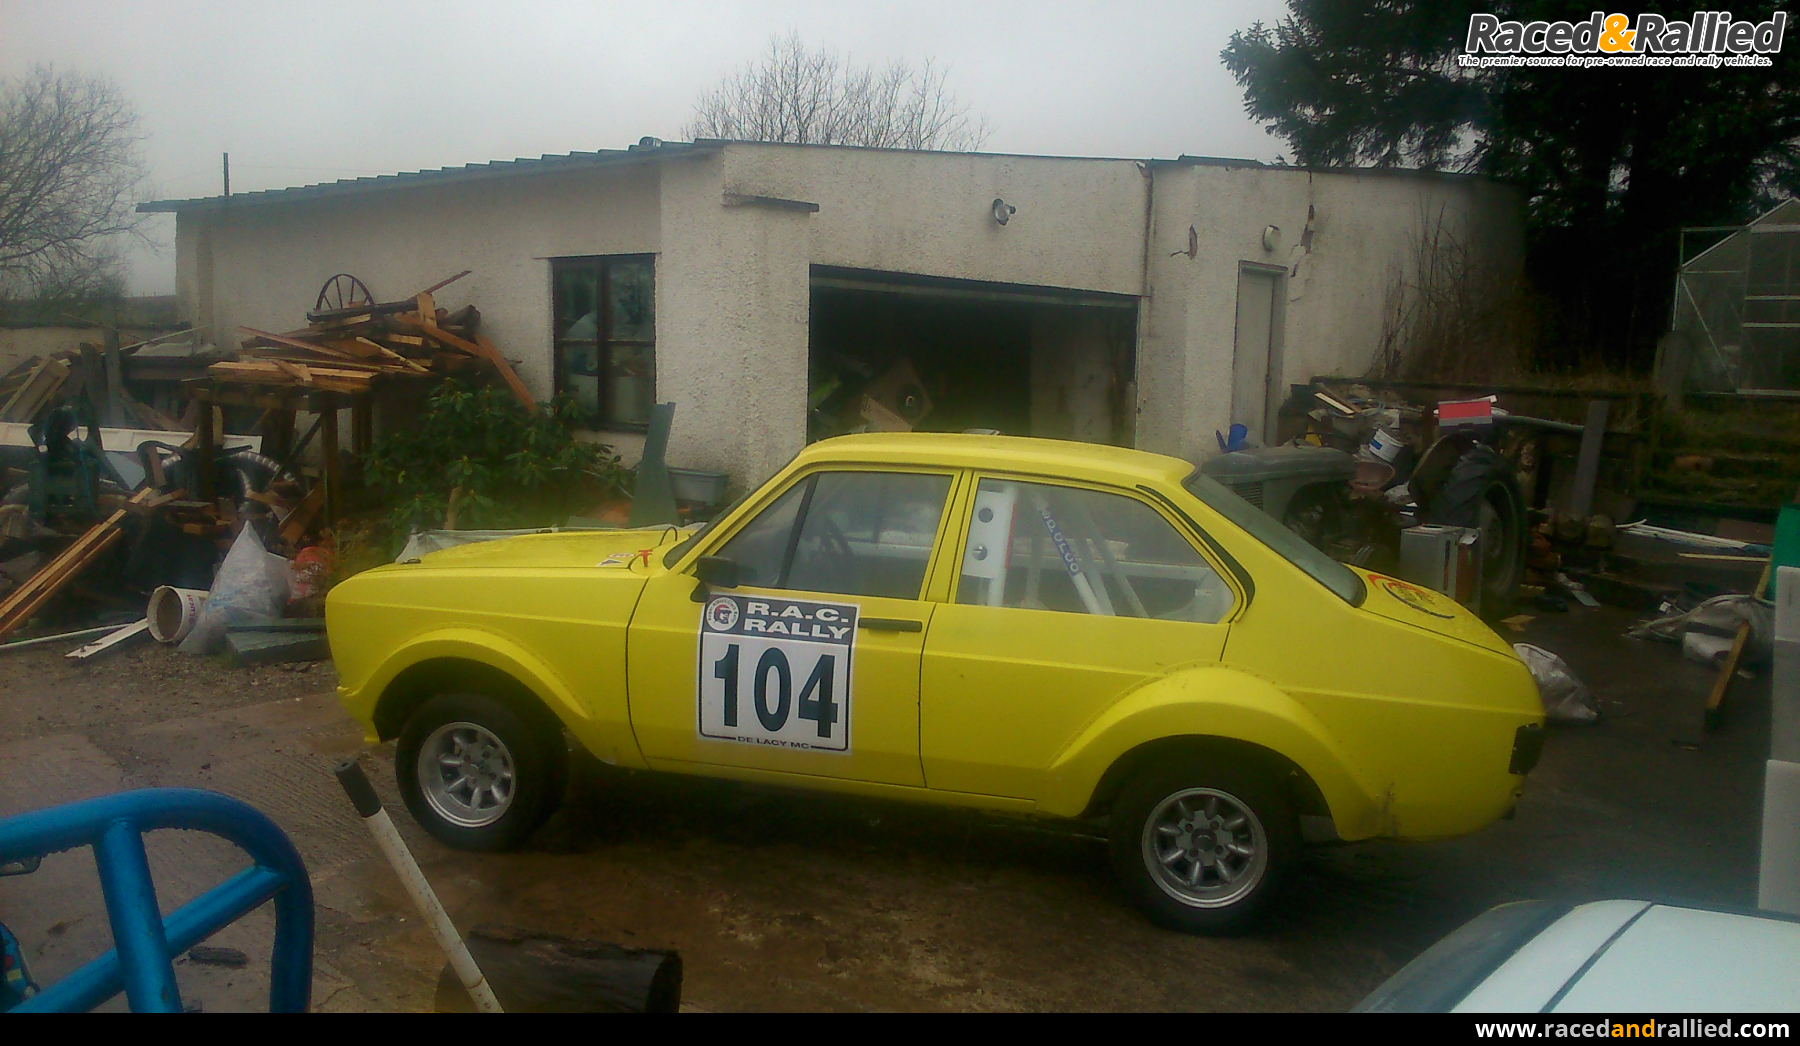 MK2 Escort rally car | Rally Cars for sale at Raced & Rallied ...